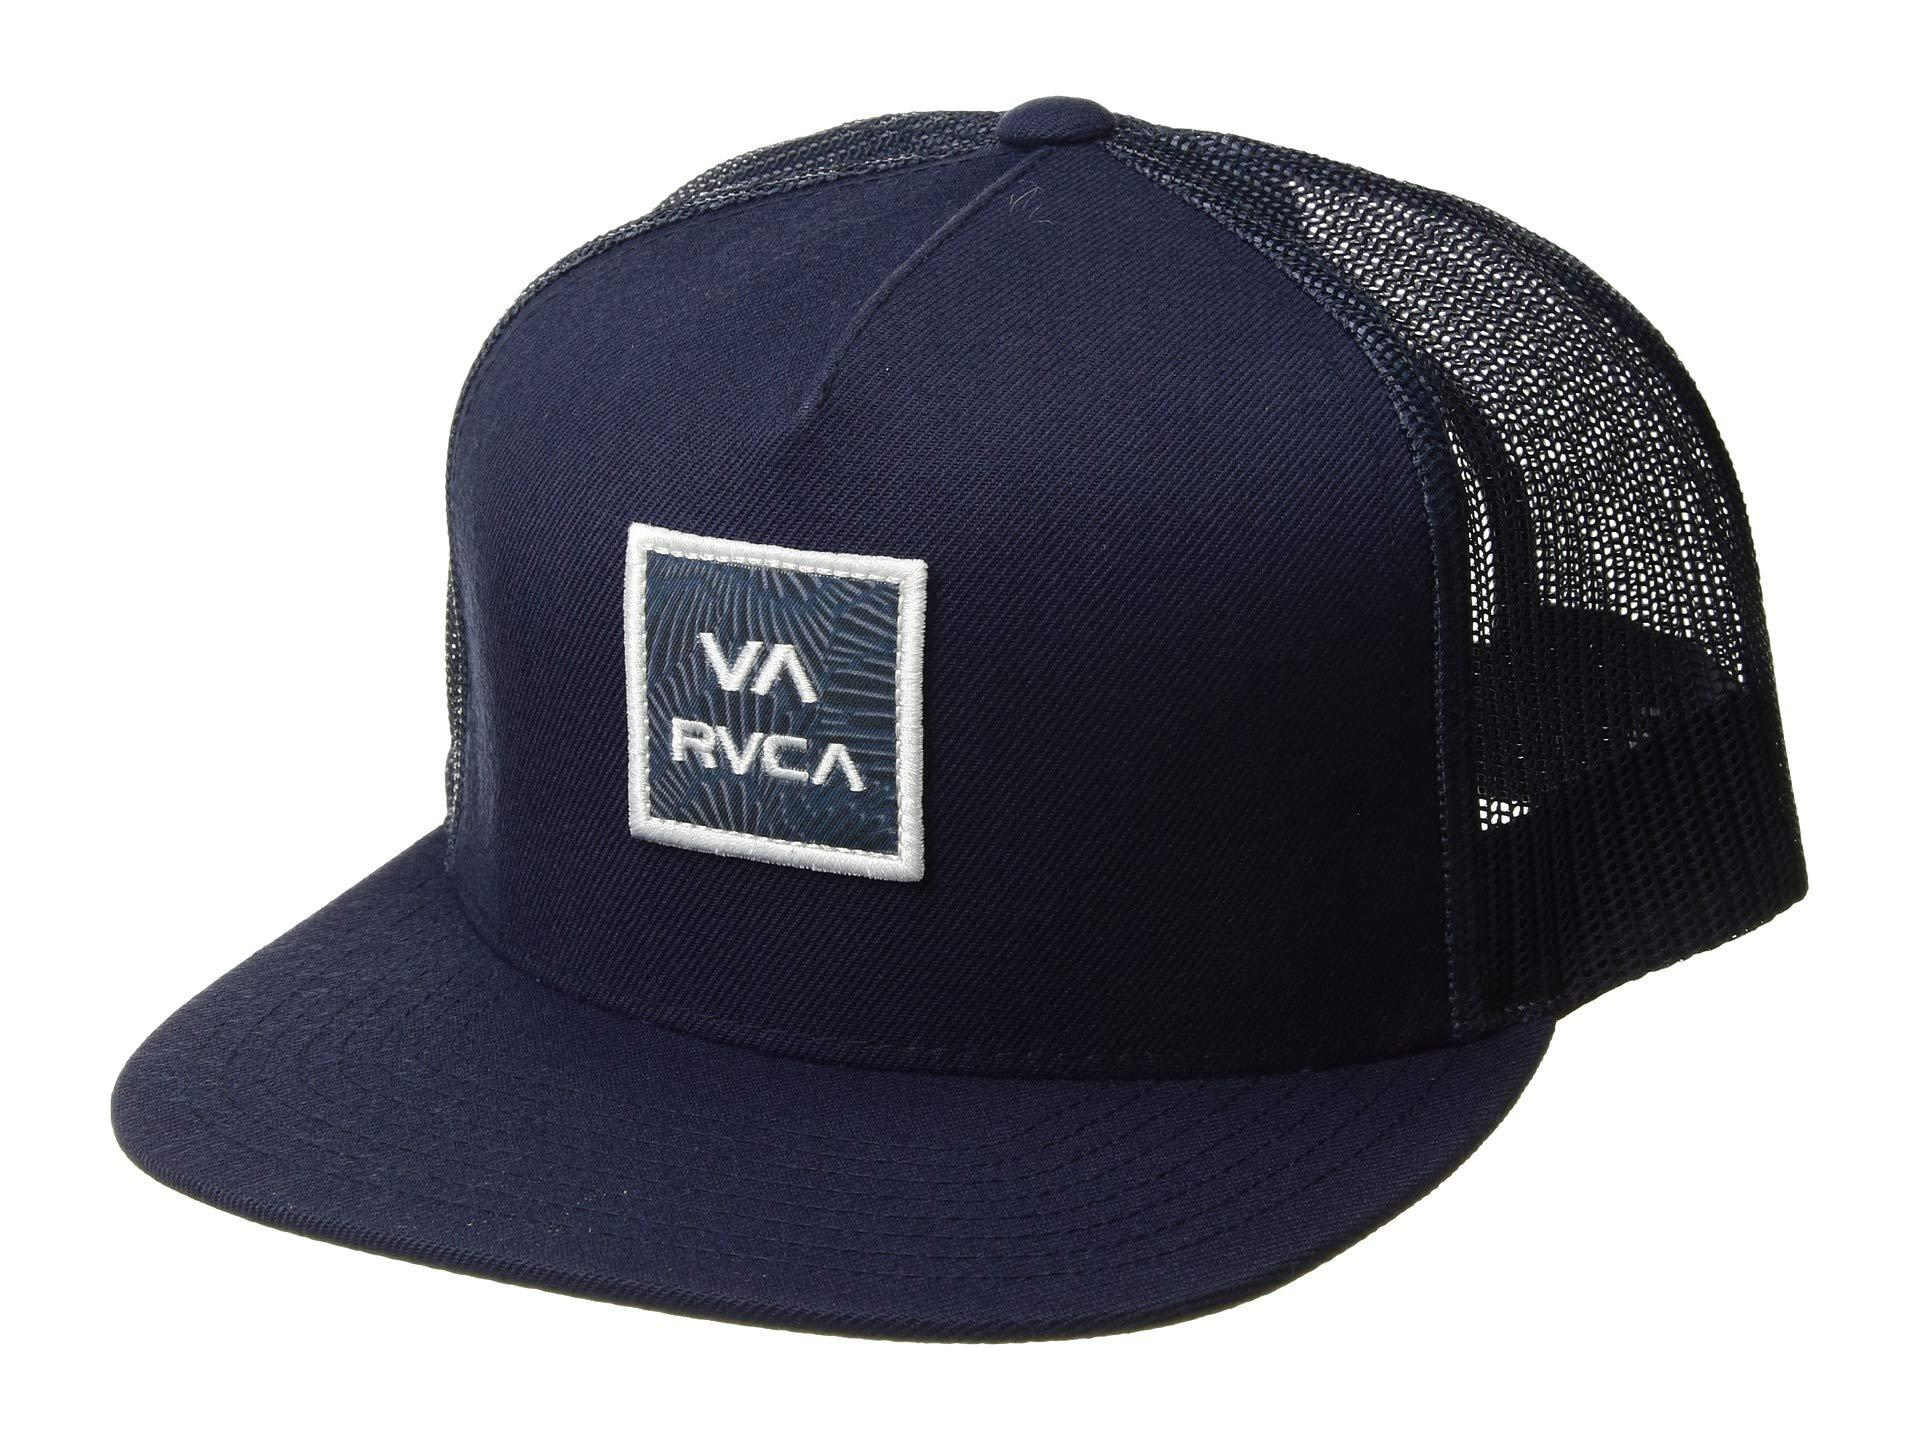 Lyst - RVCA Va All The Way Printed Trucker (navy) Caps in Blue for Men b3a12395cfe3